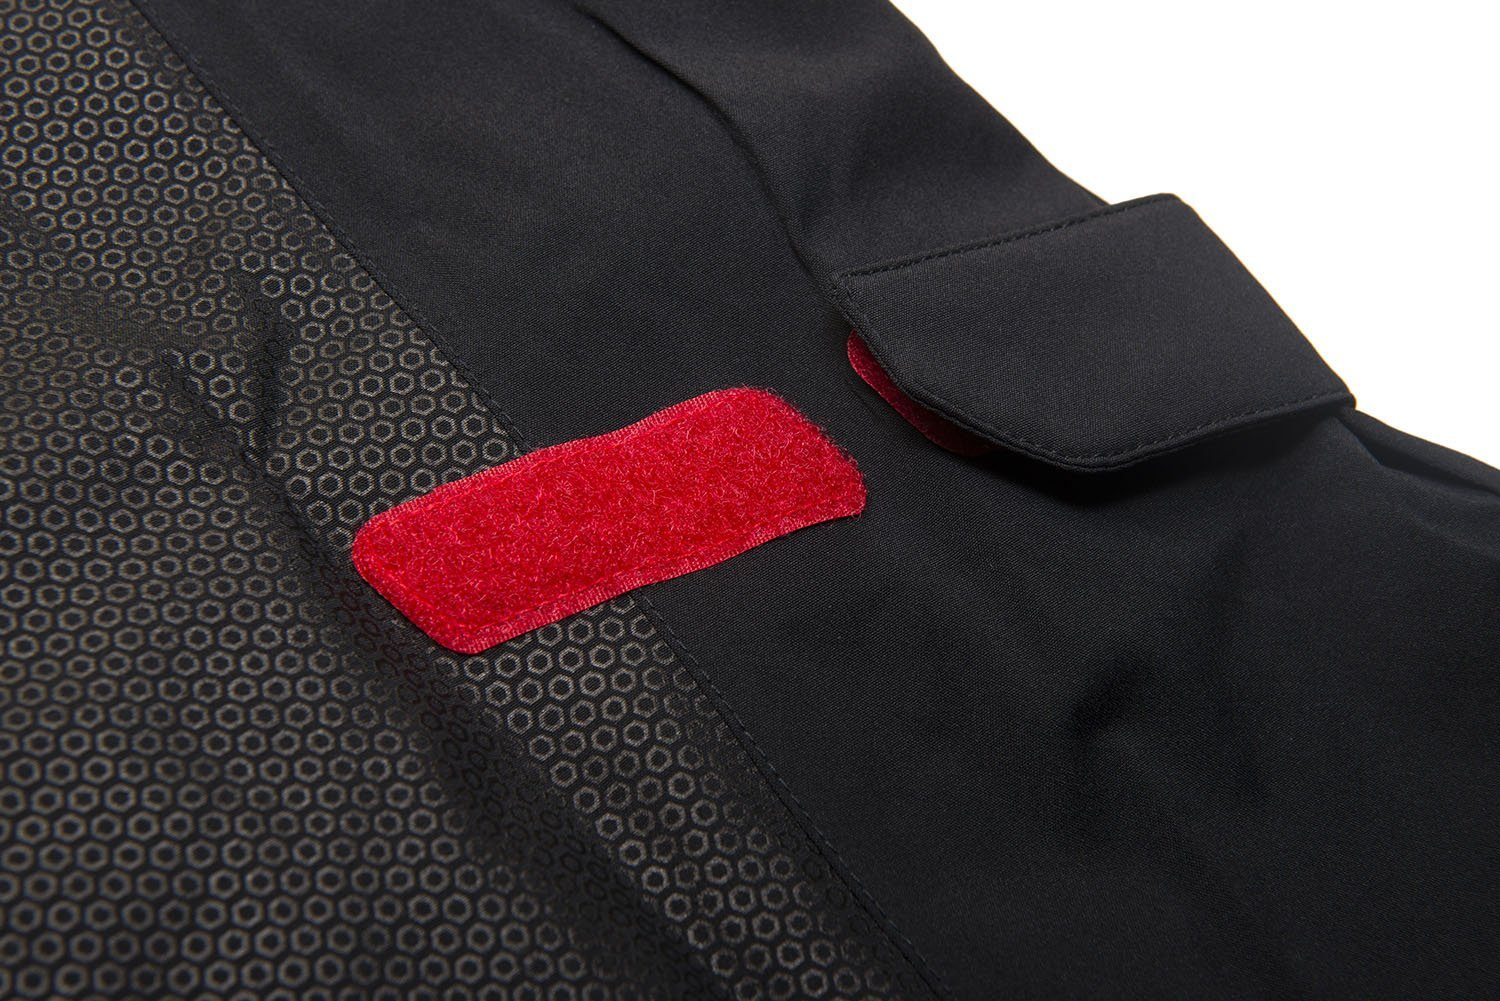 Galvin Green Alfred Gore-Tex Waterproof Jacket in Black / Red